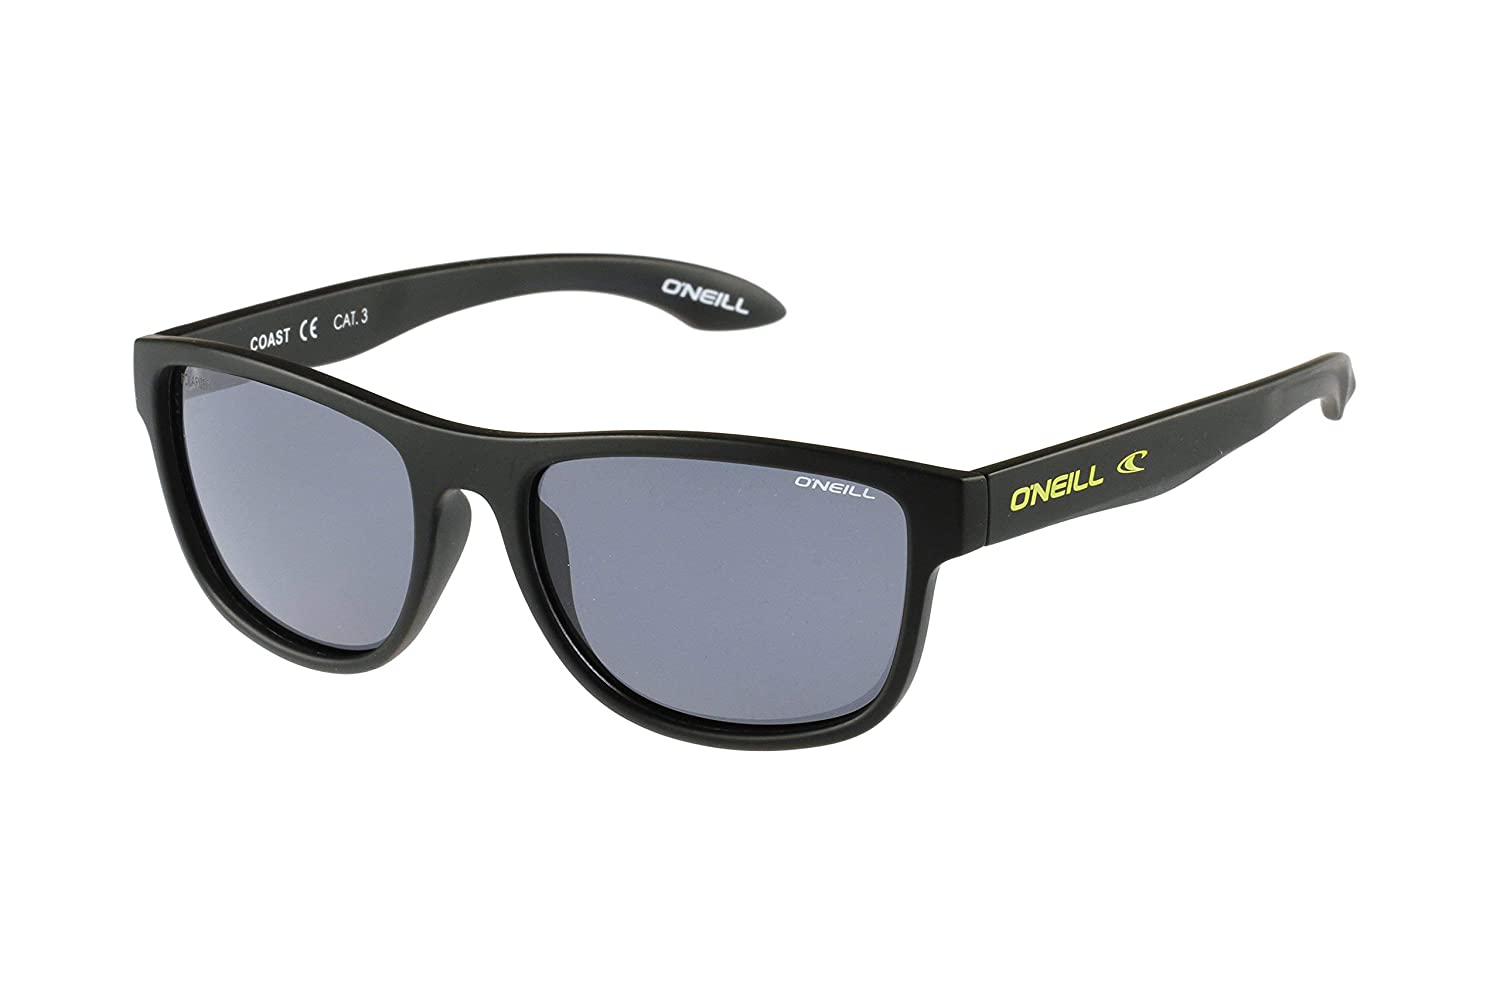 83426456f74b O Neill Coast 104P Sunglasses  Amazon.co.uk  Clothing